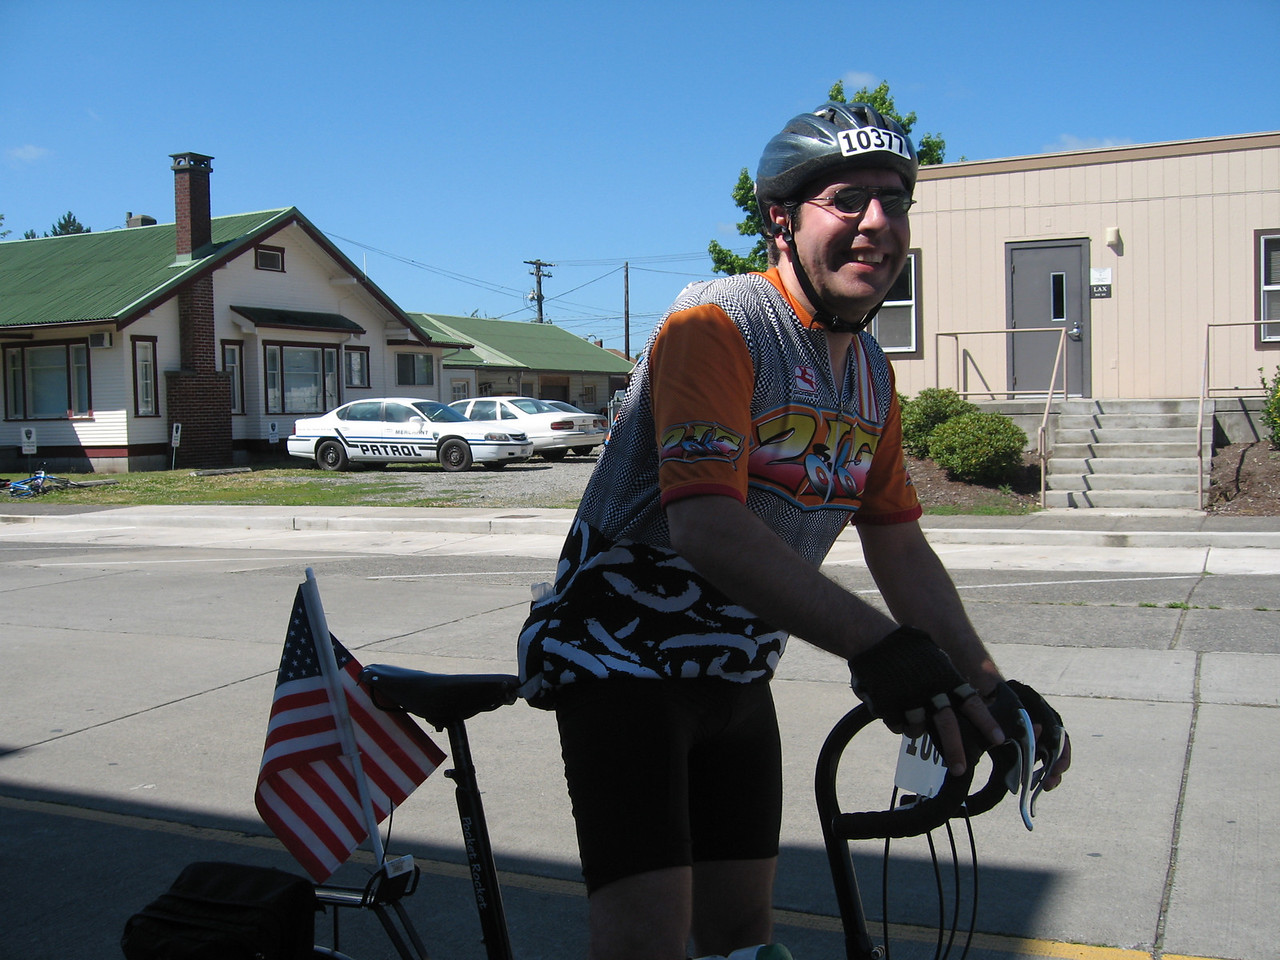 Bob arrived in Centralia. He rode he folding bike, a Bike Friday. The American car-flag he is sporting he picked up off the roadway on one of our training rides the week before the STP.